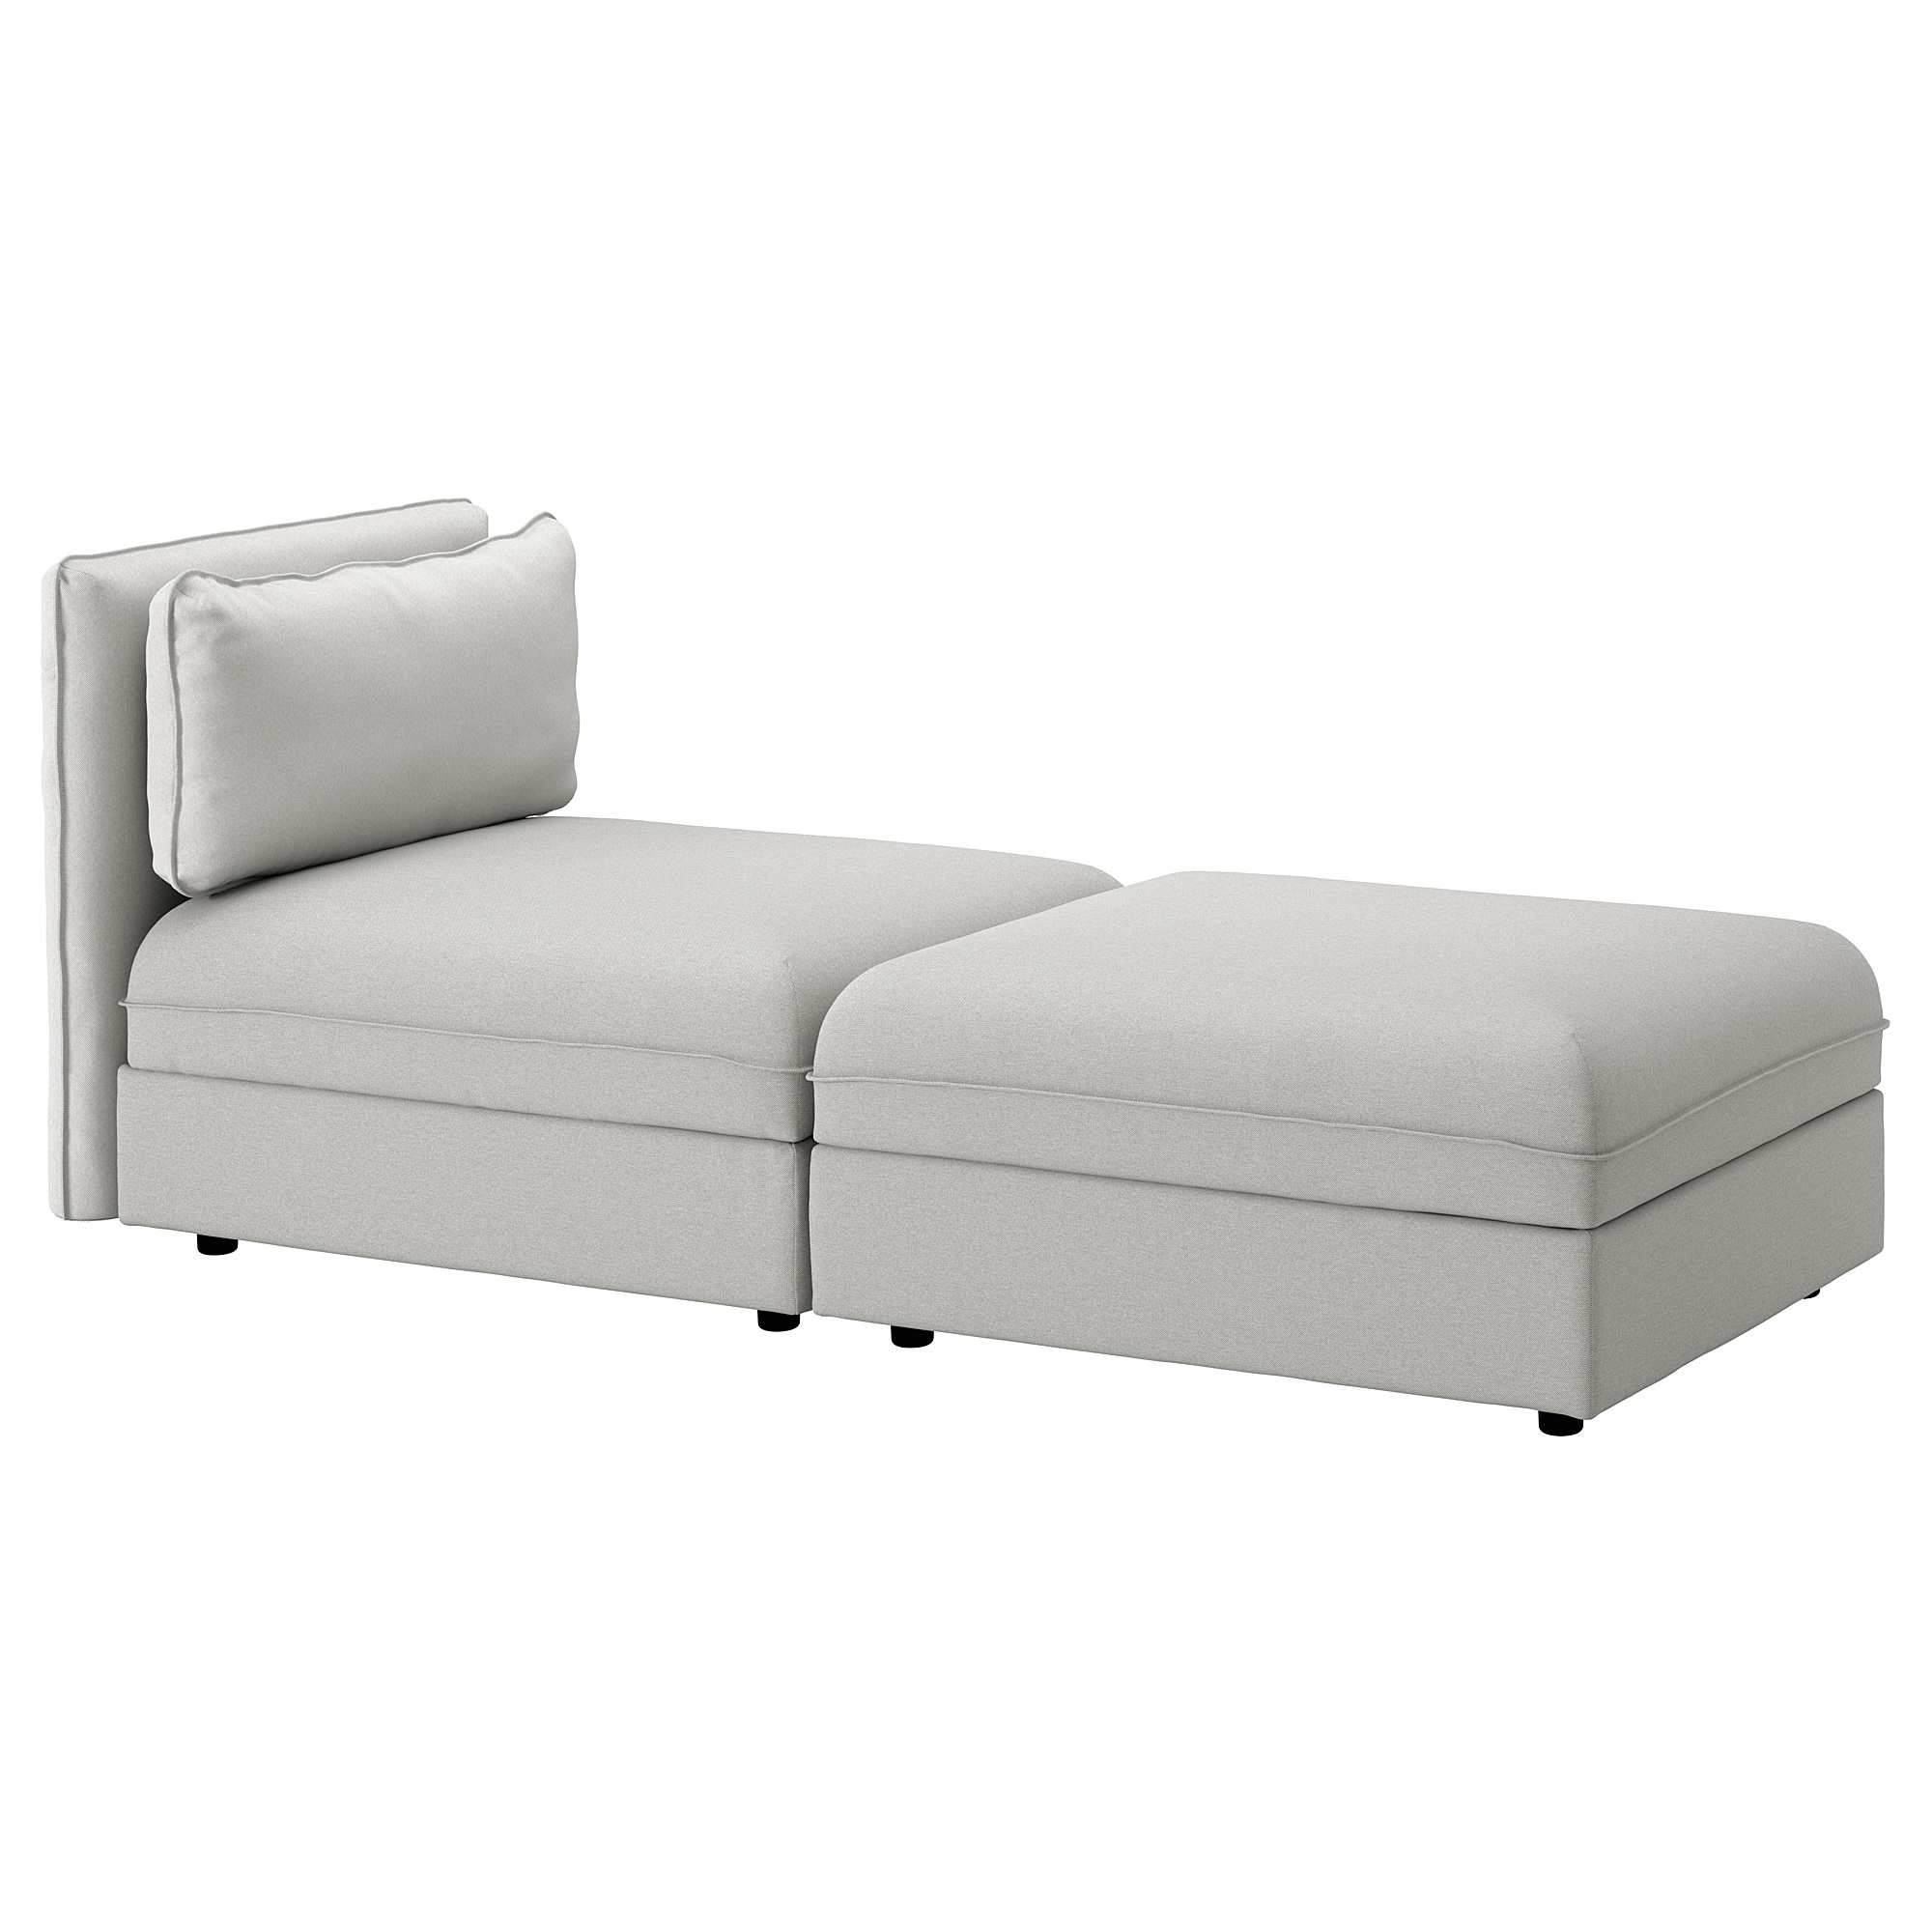 Ikea chaise sofa kivik 3 seat sofa orrsta light grey ikea for Chaise longue ikea